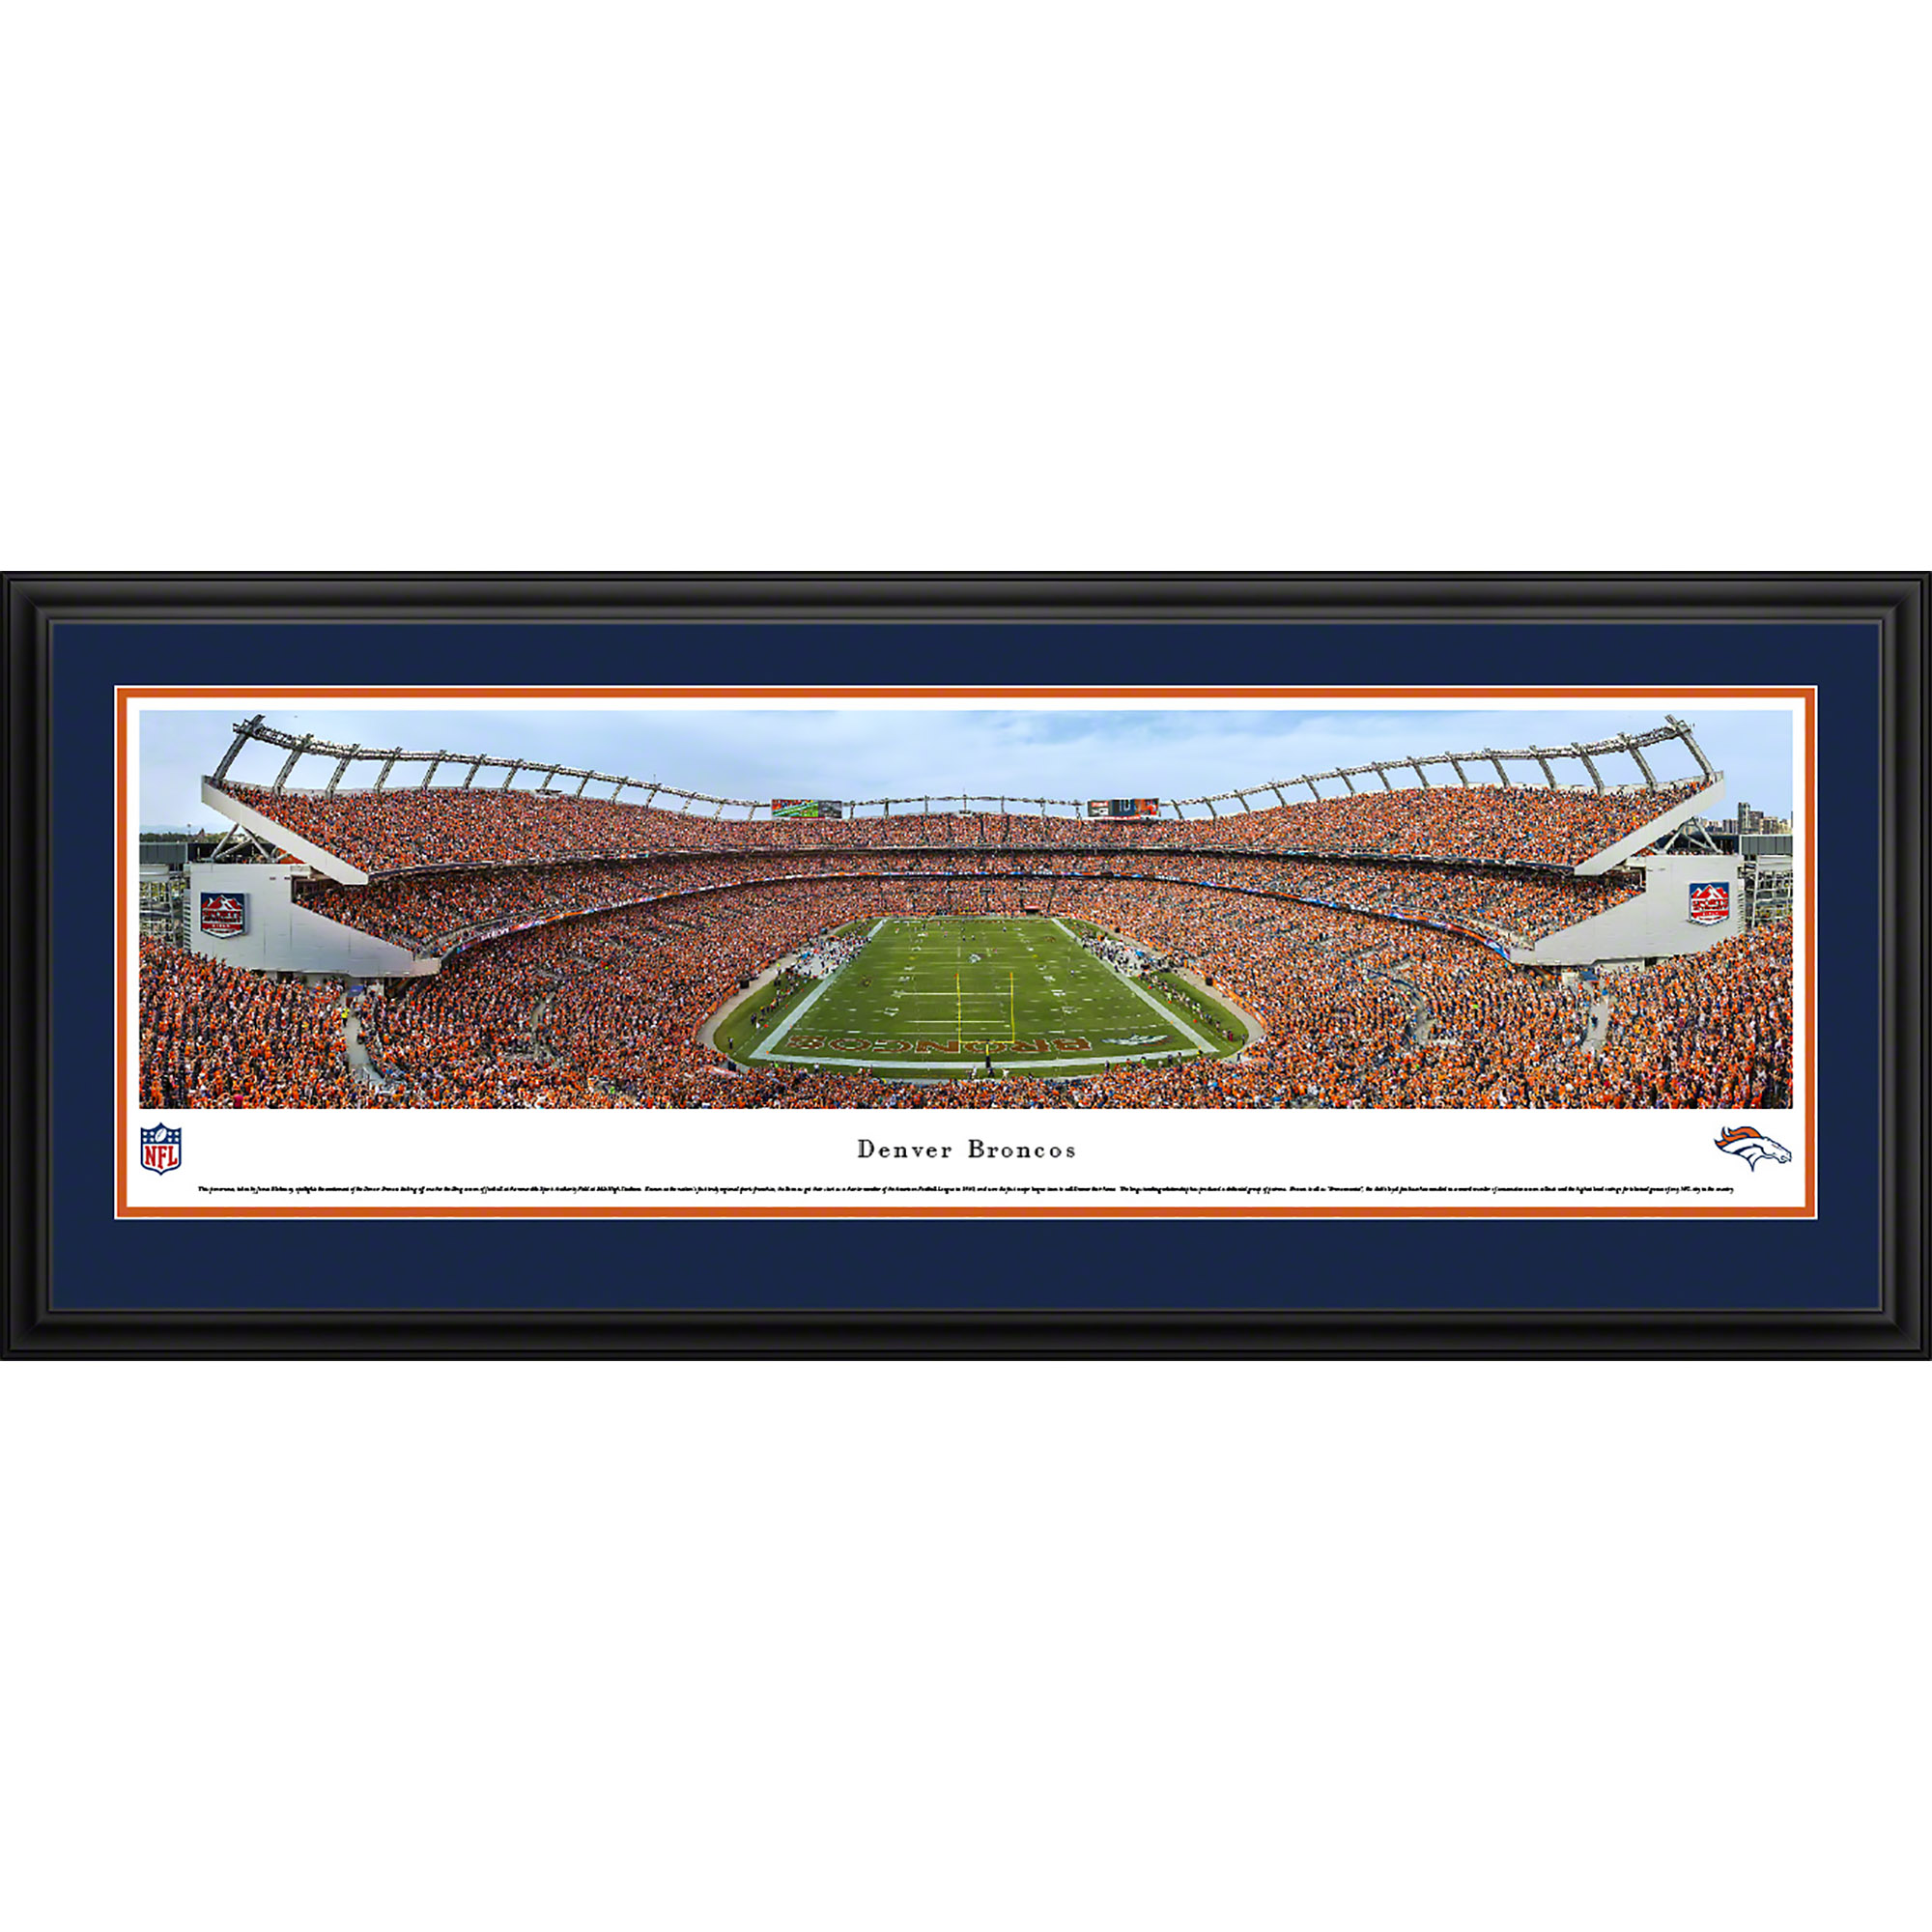 Denver Broncos - End Zone During A Night Game - Blakeway Panoramas NFL Print with Deluxe Frame and Double Mat